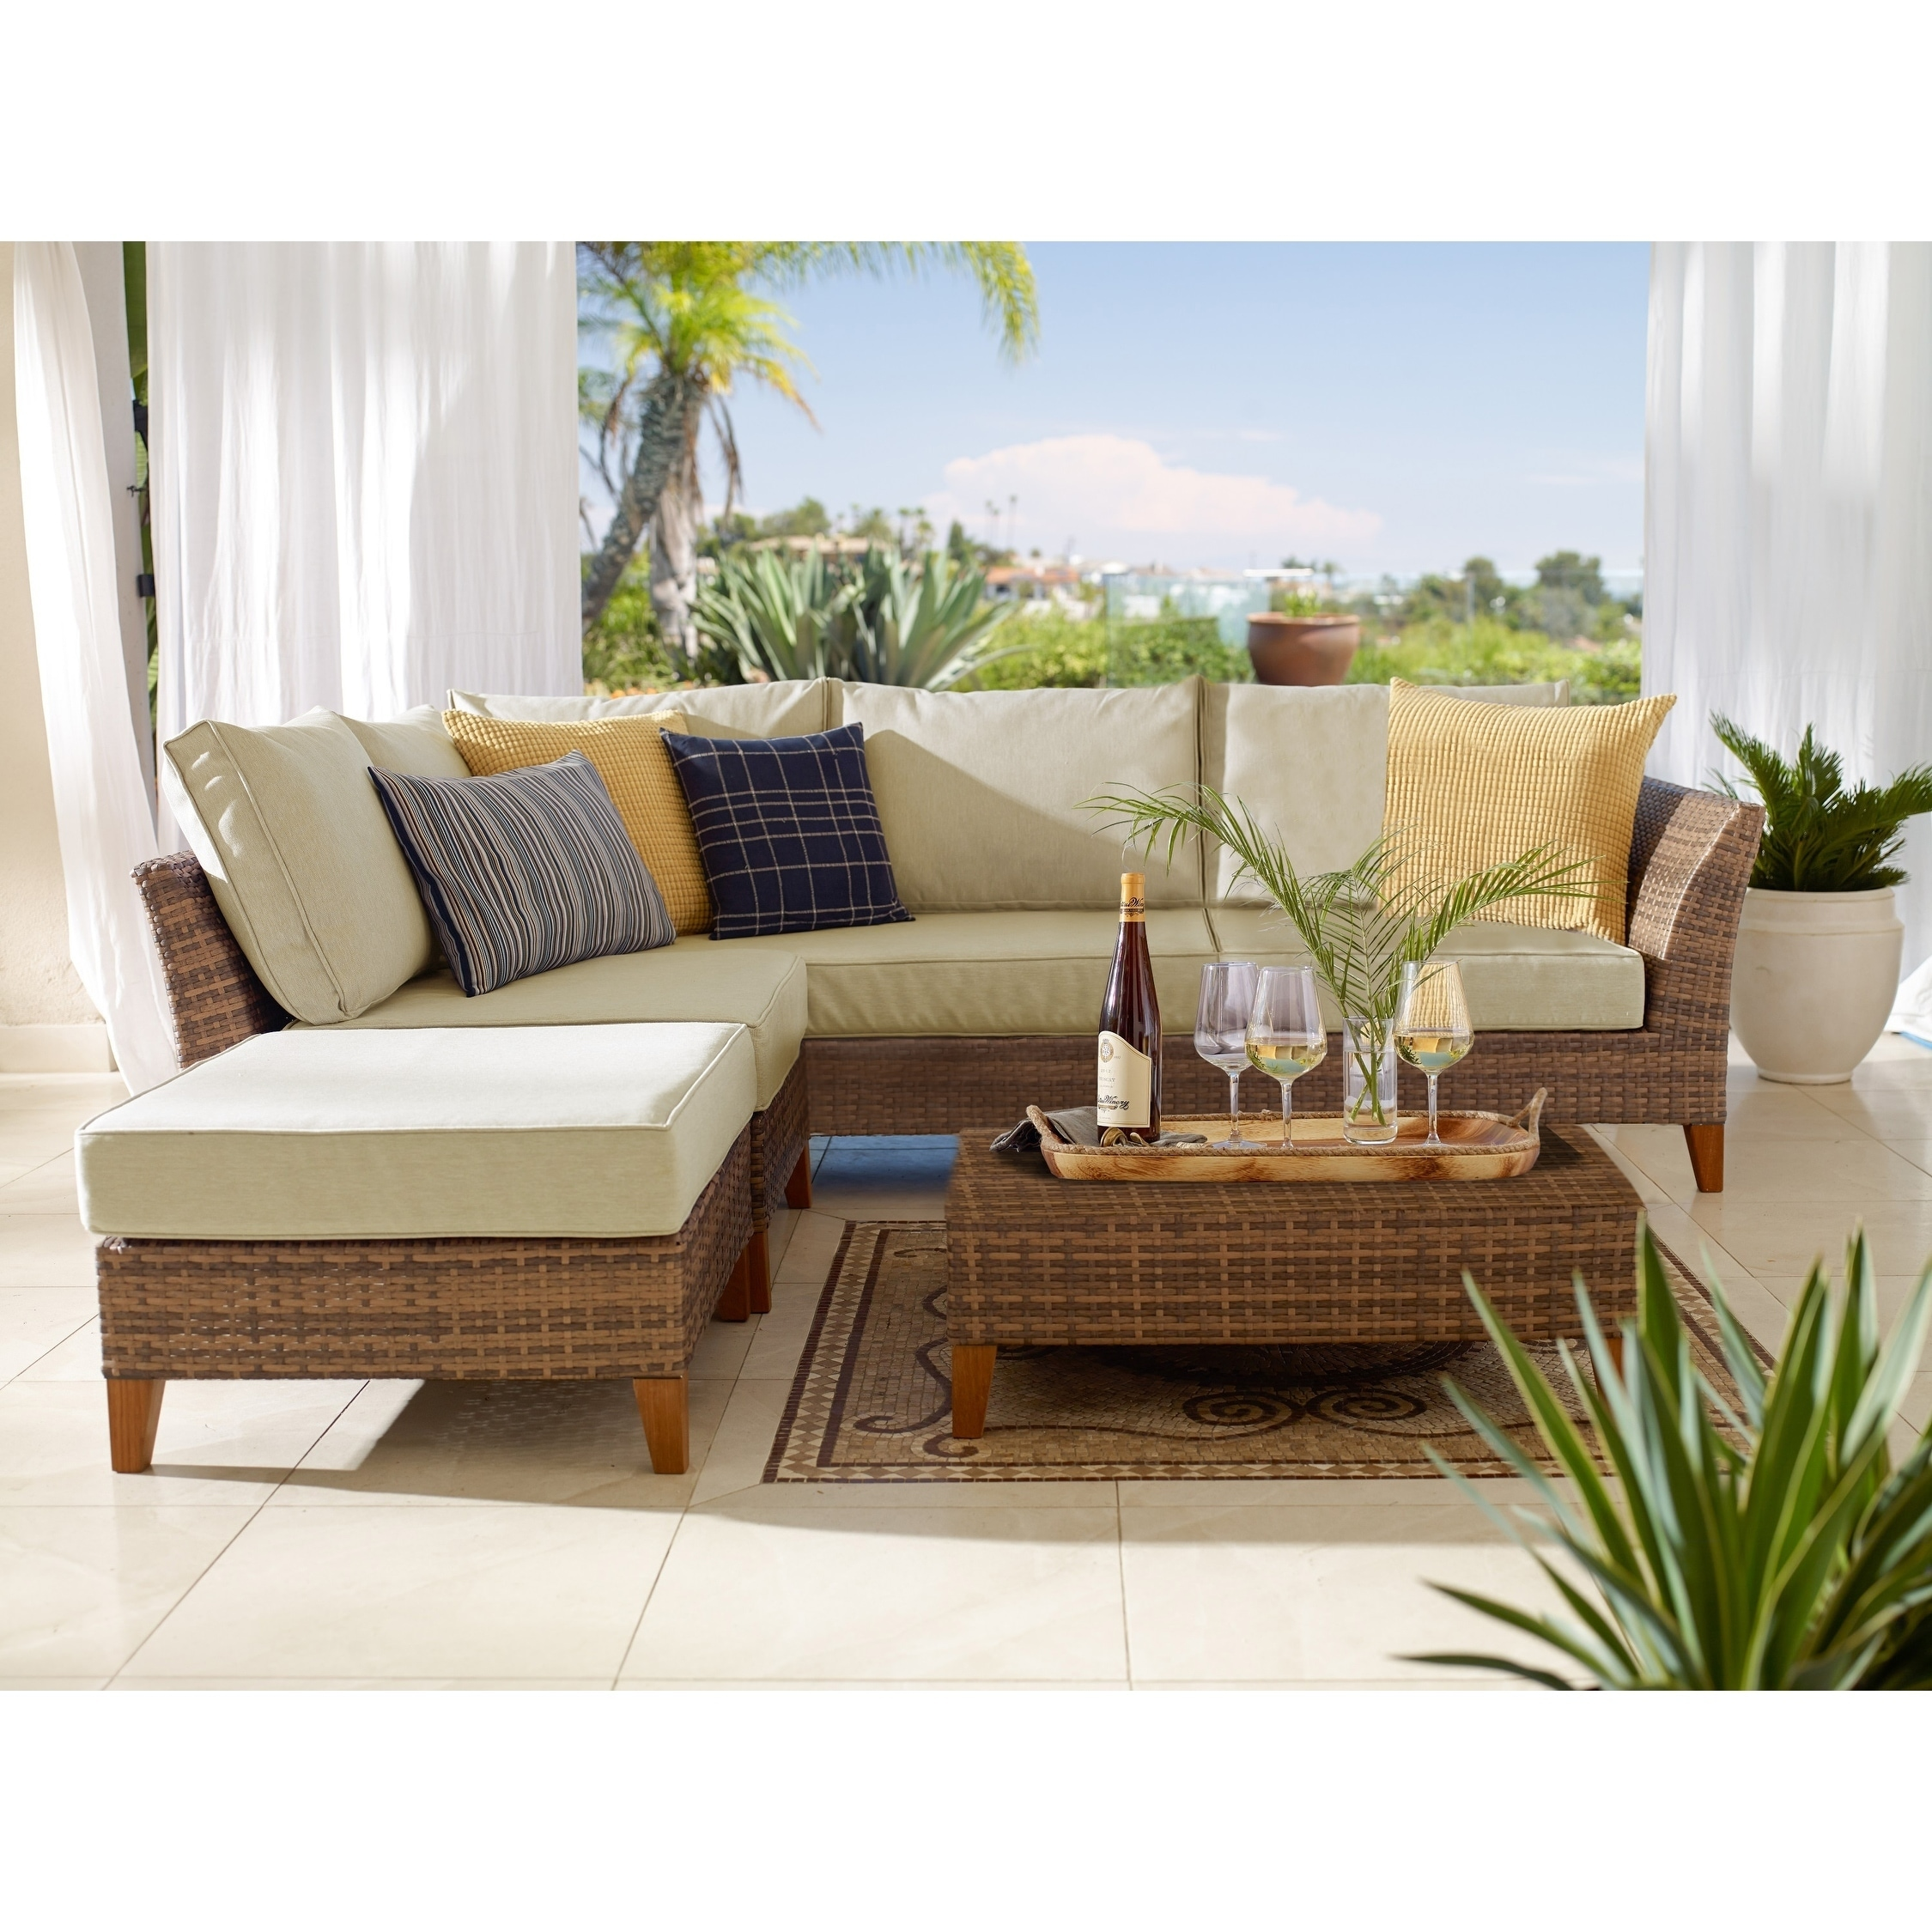 Piedmont 9 Piece Sectional Sofa Set   Free Shipping Today   Overstock    20043867